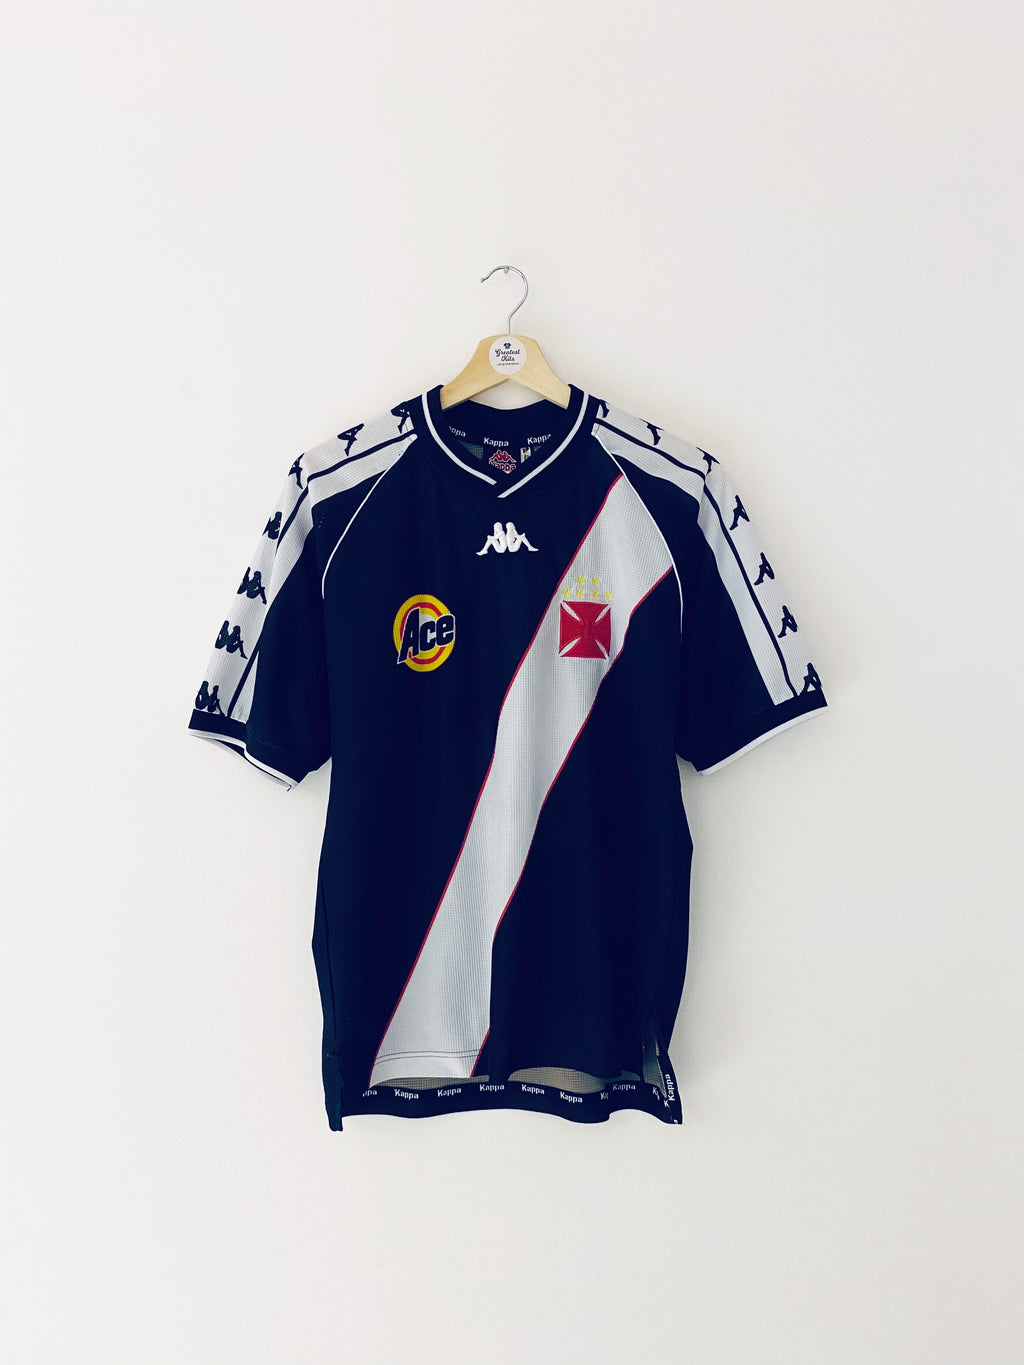 1999/00 Vasco da Gama Home Shirt #6 (Felipe) (S) 7/10